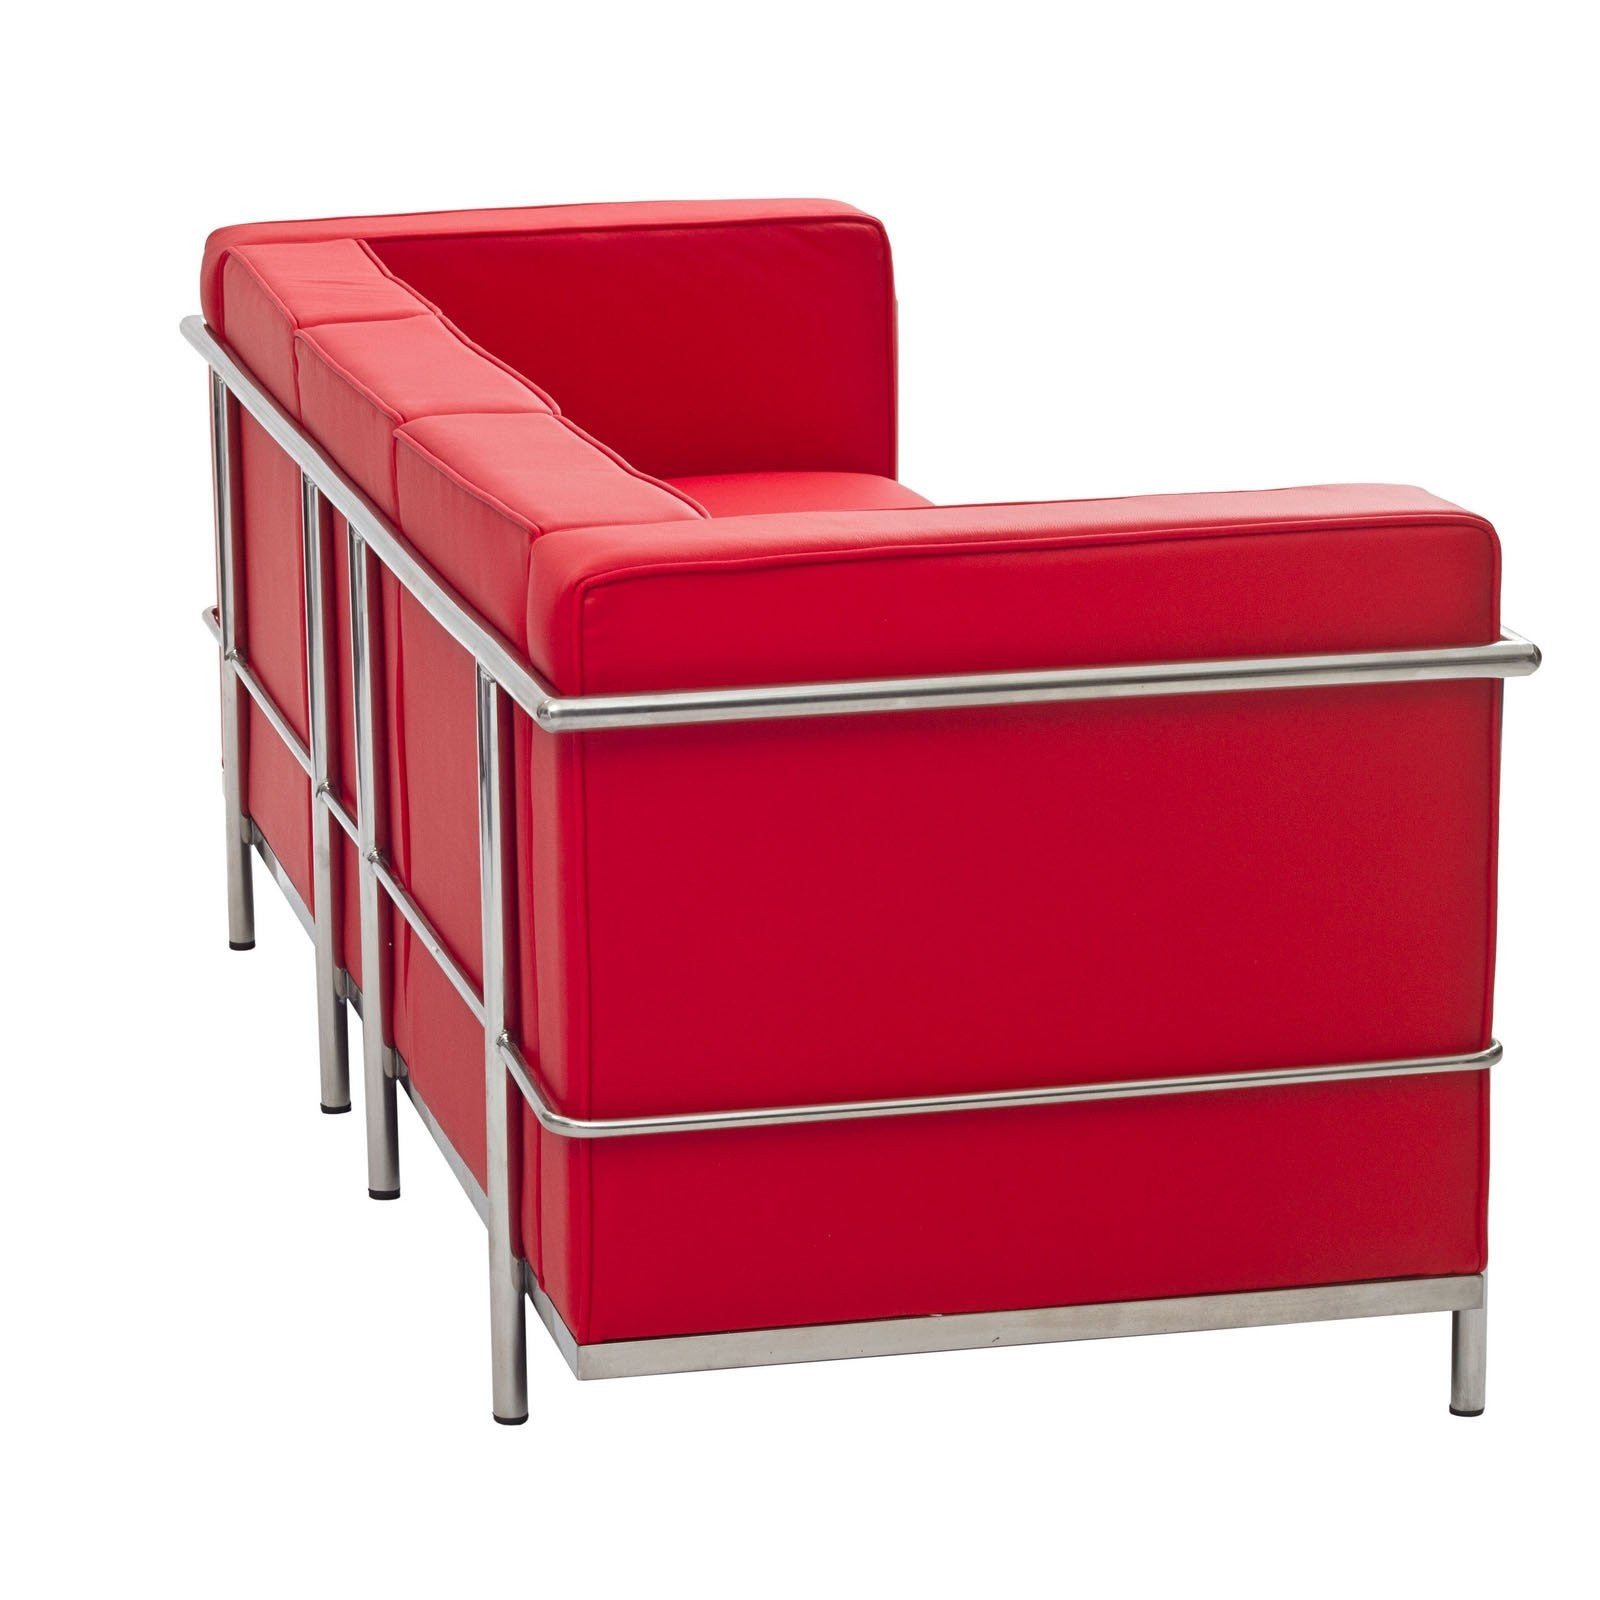 Le Corbusier Lc2 Sofa Replica Affordable With Free